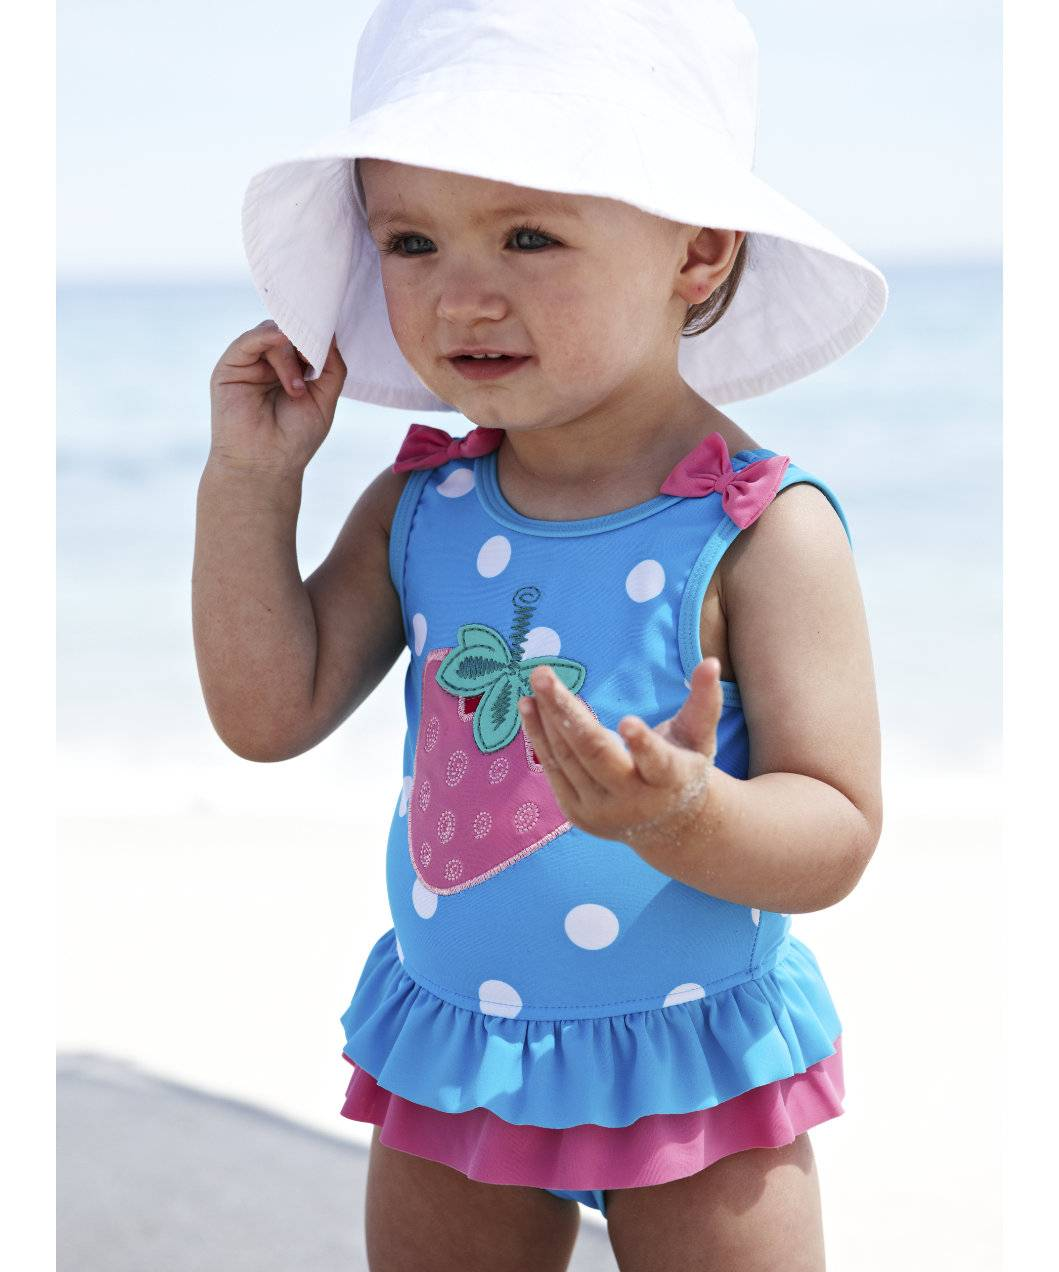 Ruffles, tutus, red polka dots and blue stripes – our selection of infant and toddler girls' swimsuits has it all. Cute bikinis and colorful tankinis are great for afternoons by the pool with your baby girl, while snug rashgaurds and cover-ups help protect young skin during long days at the beach.